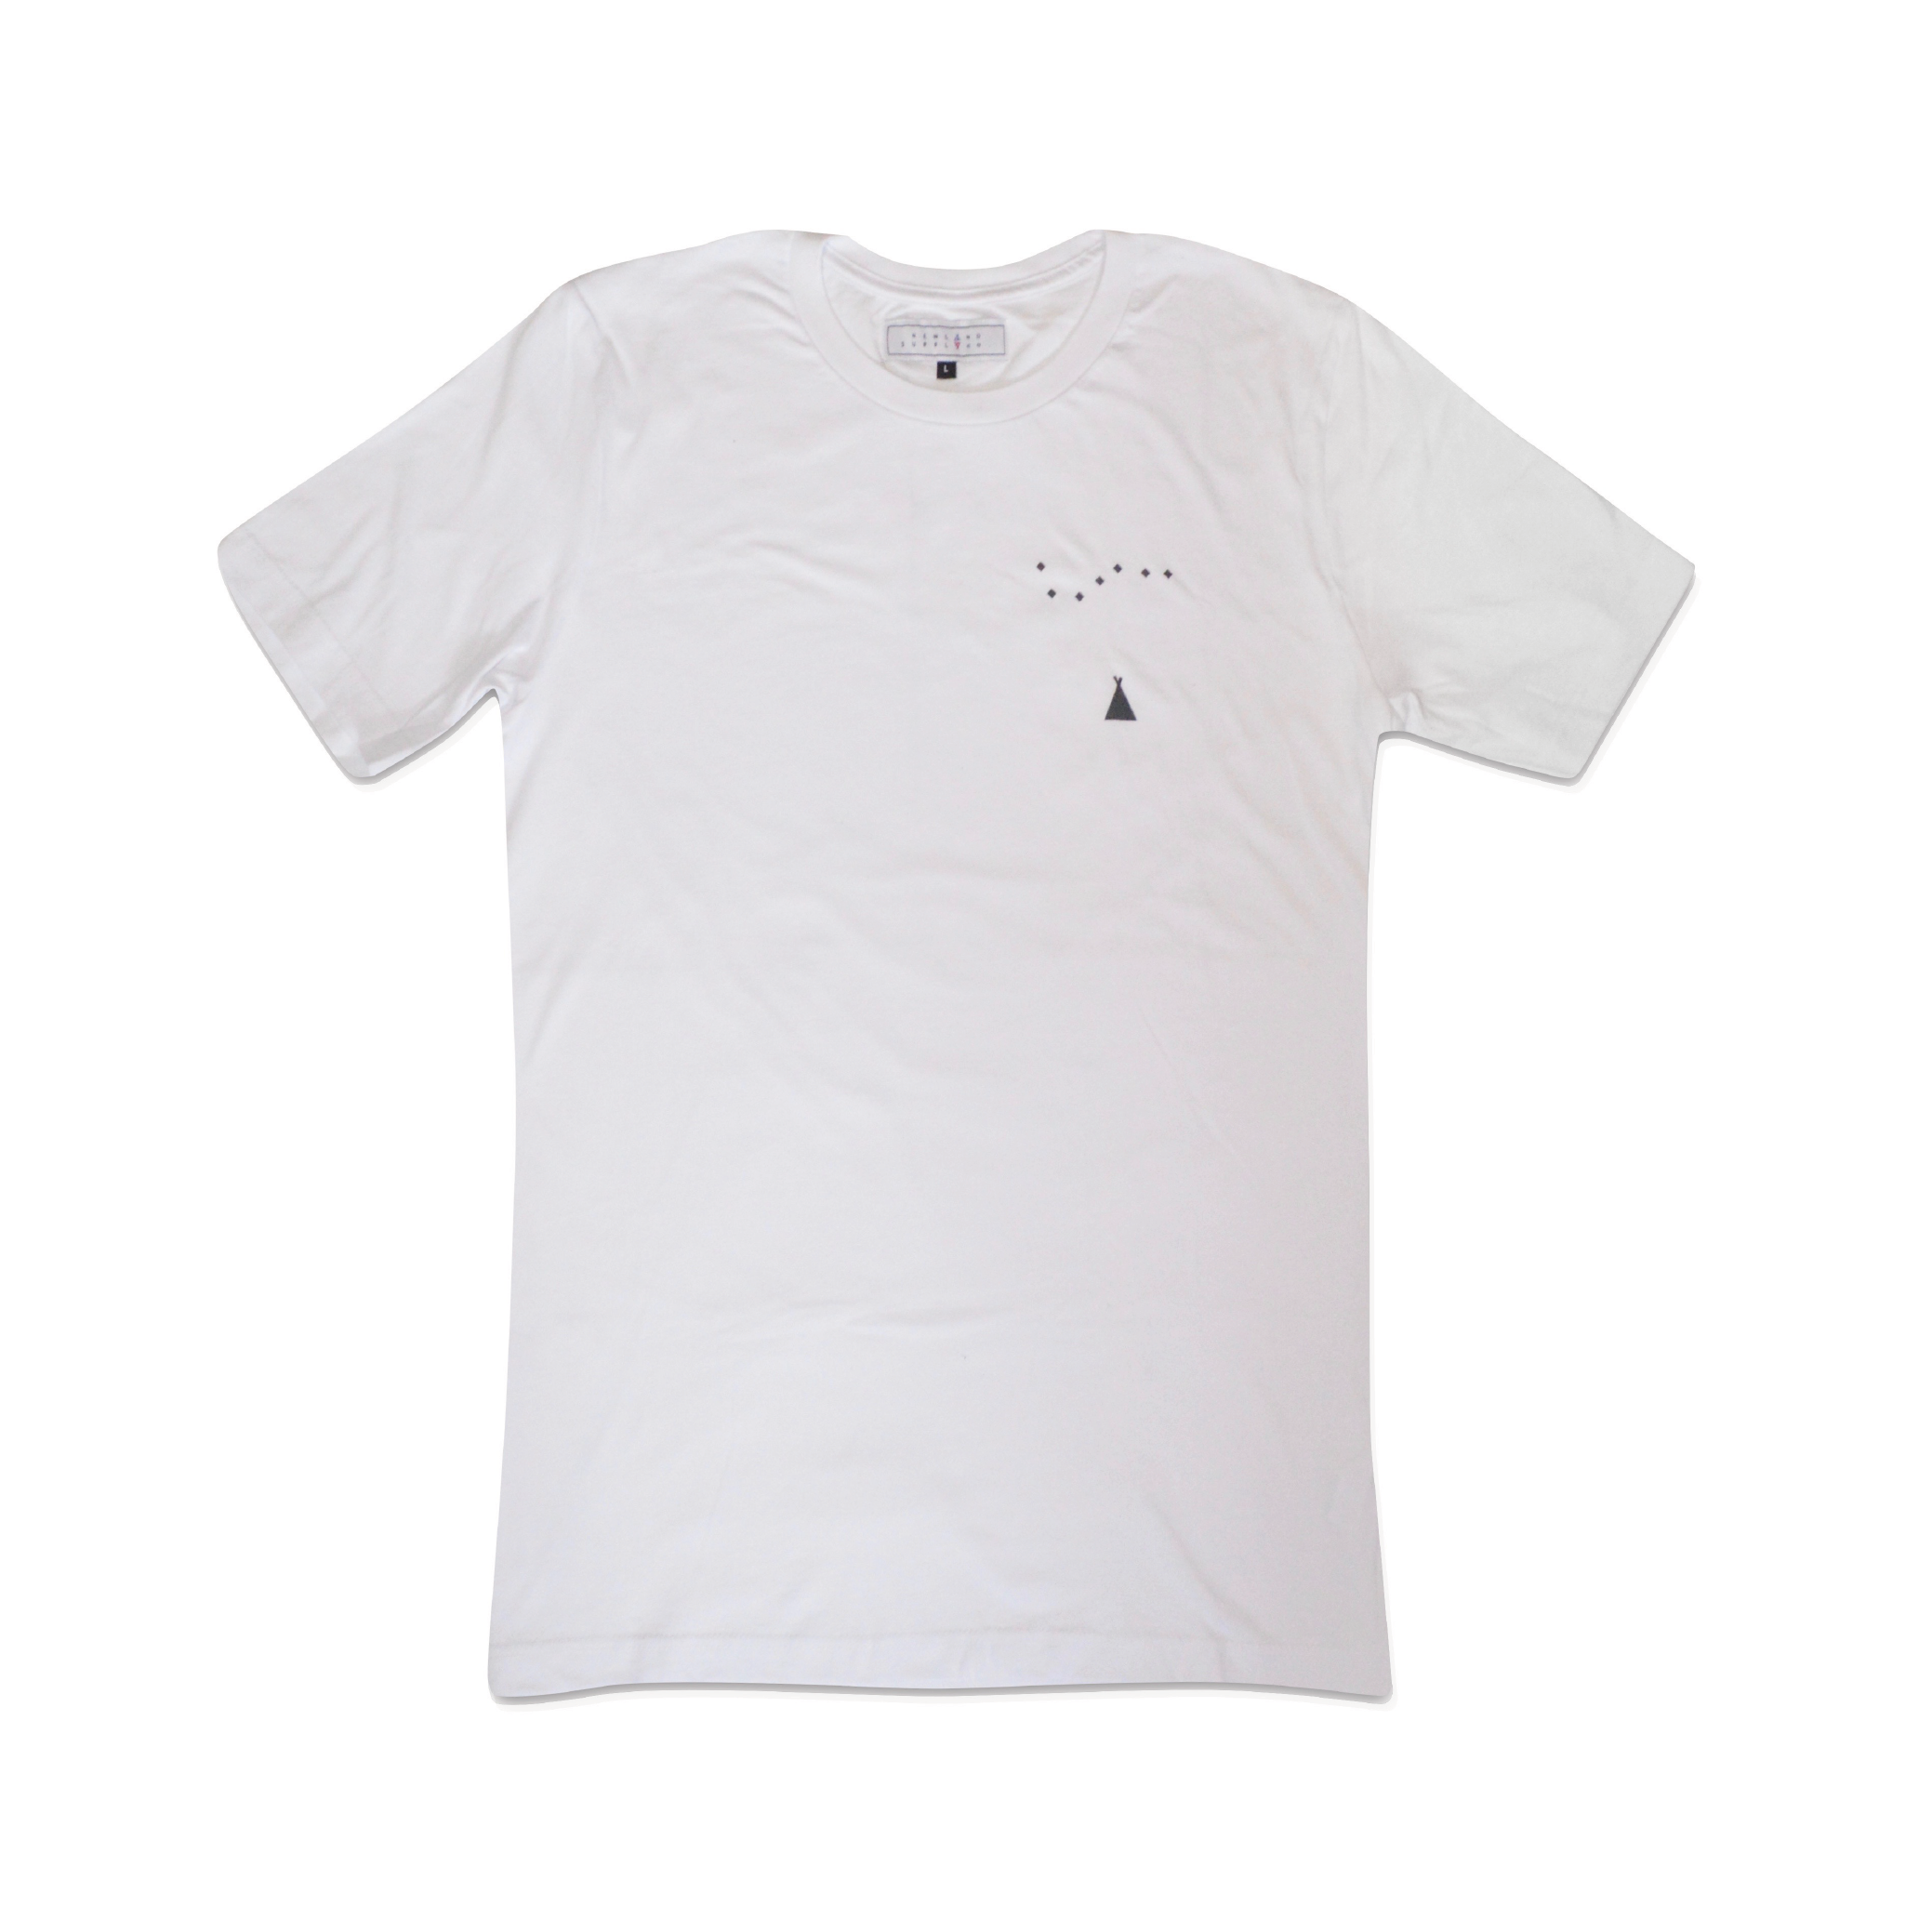 WITHERIDGE TEE IN WHITE    By  Newland Supply Co.     Our Witheridge Tee features designs by Harry Fricker on the front breast & Newland detailing on the back.    SHOP NOW        £24